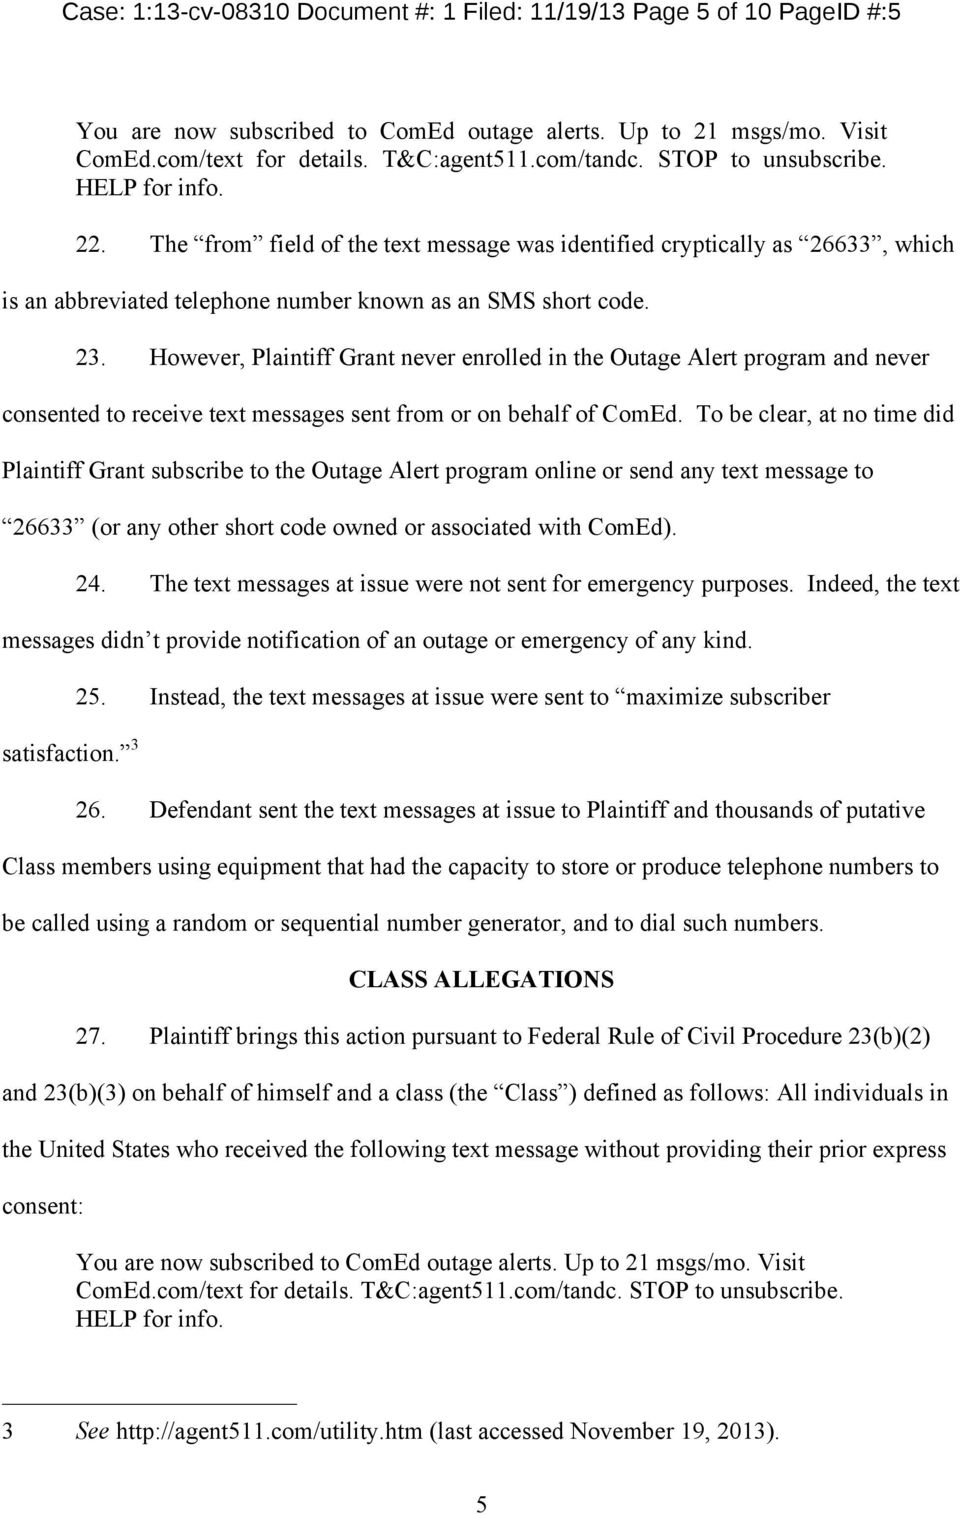 However, Plaintiff Grant never enrolled in the Outage Alert program and never consented to receive text messages sent from or on behalf of ComEd.